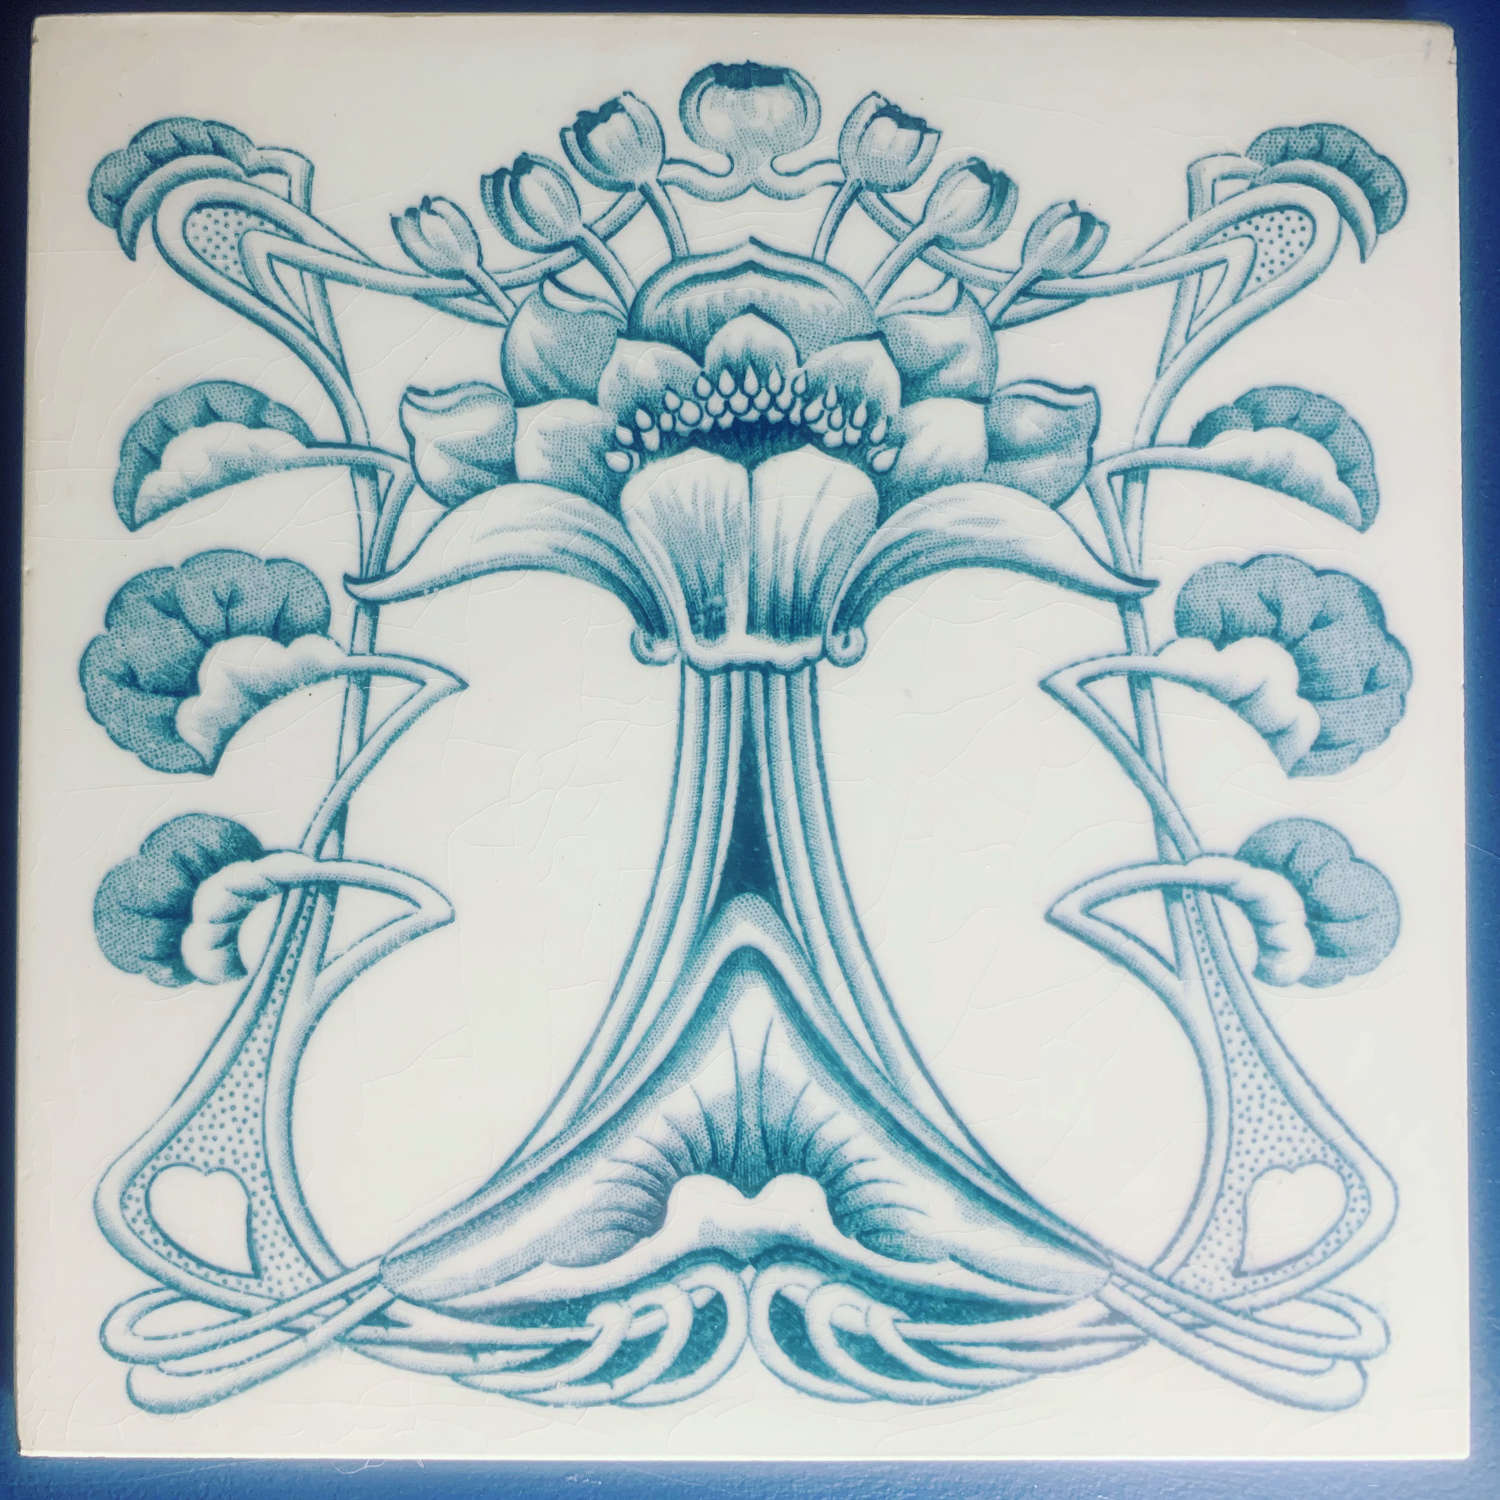 Art Nouveau English Marsden Tile Co. Floral naturalistic tile c.1900.